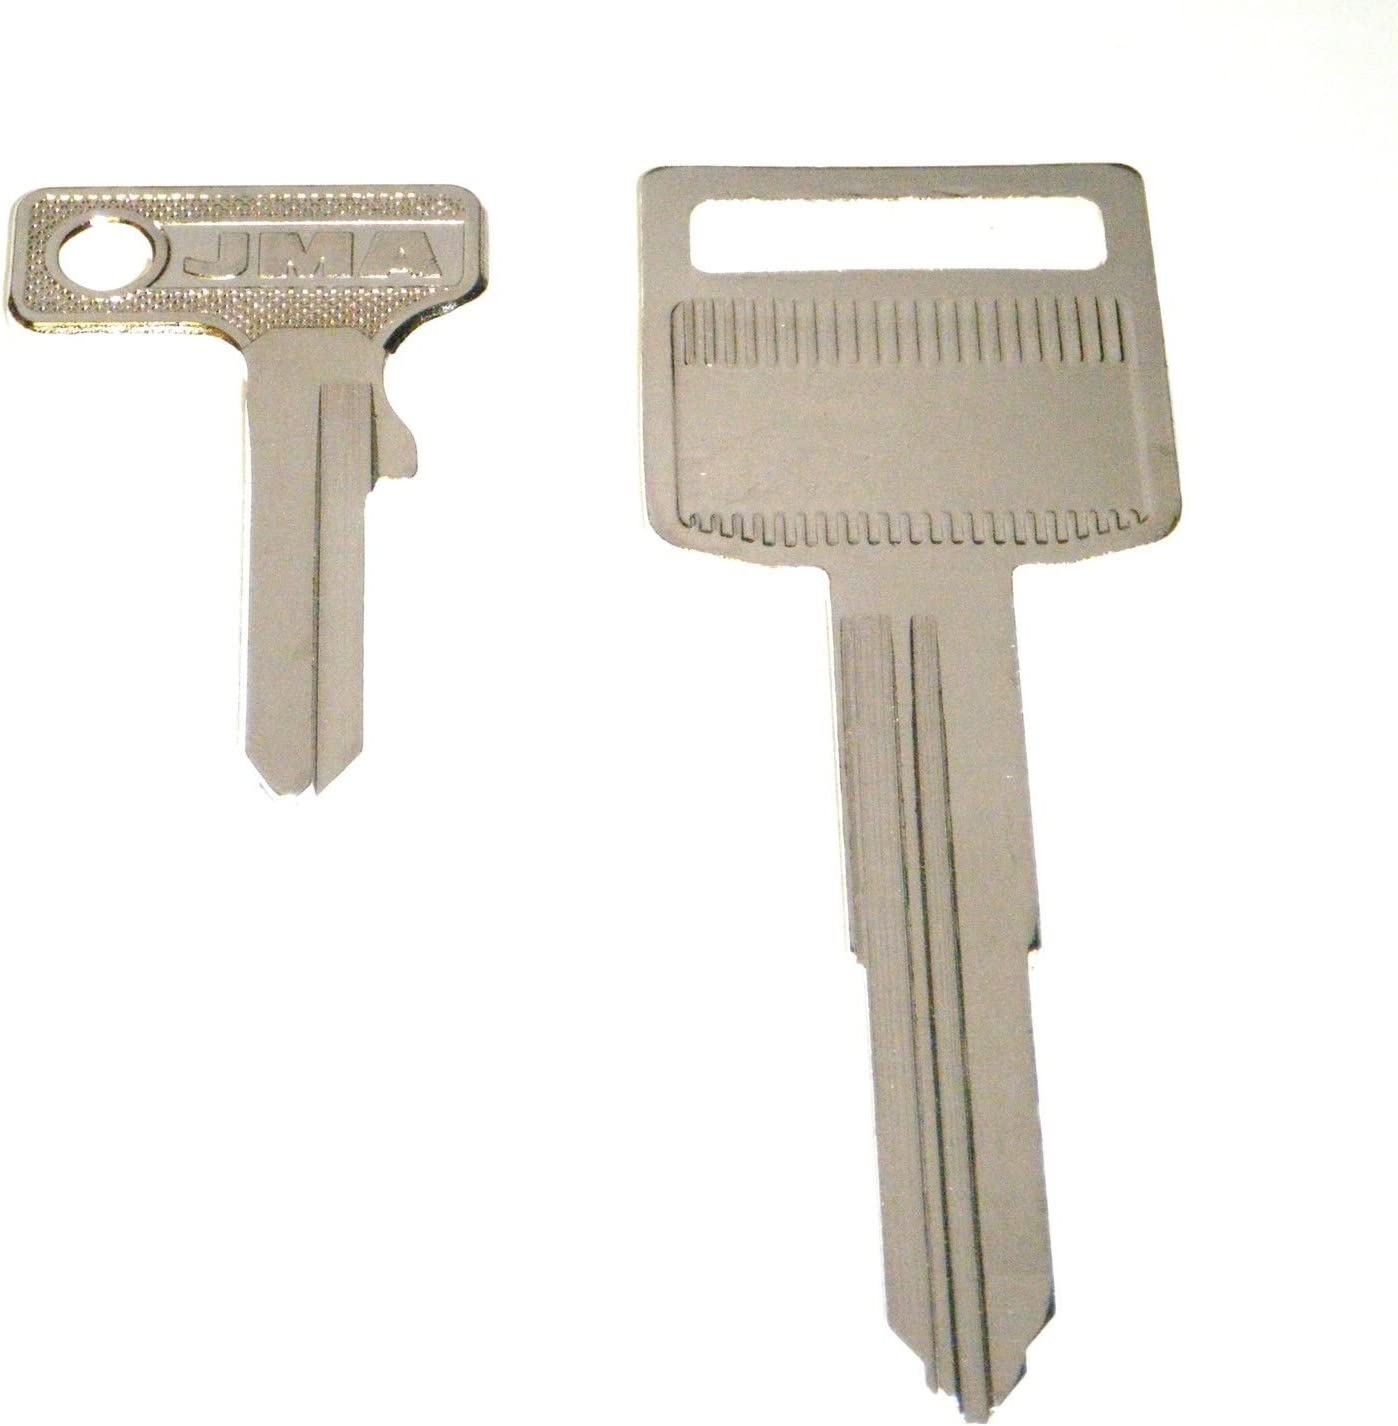 Replacement Key Blank Fits 1999 2000 2001 2002 2003 2004 2005 2006 2007 Victory